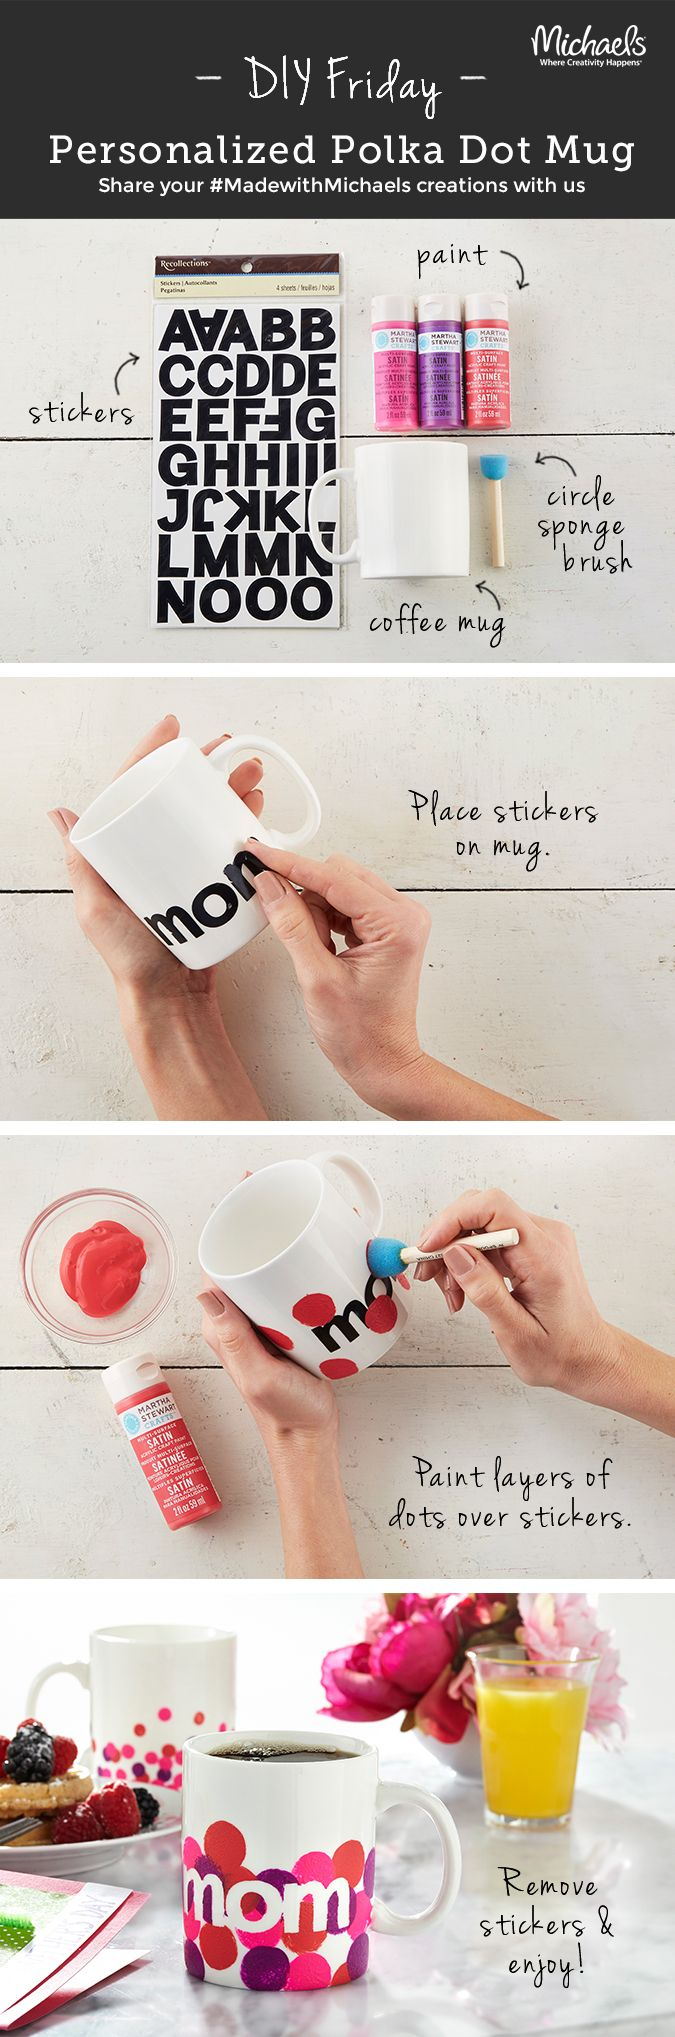 craft a stylish personalized mug for mom with alphabet stickers and her favorite colors of paint